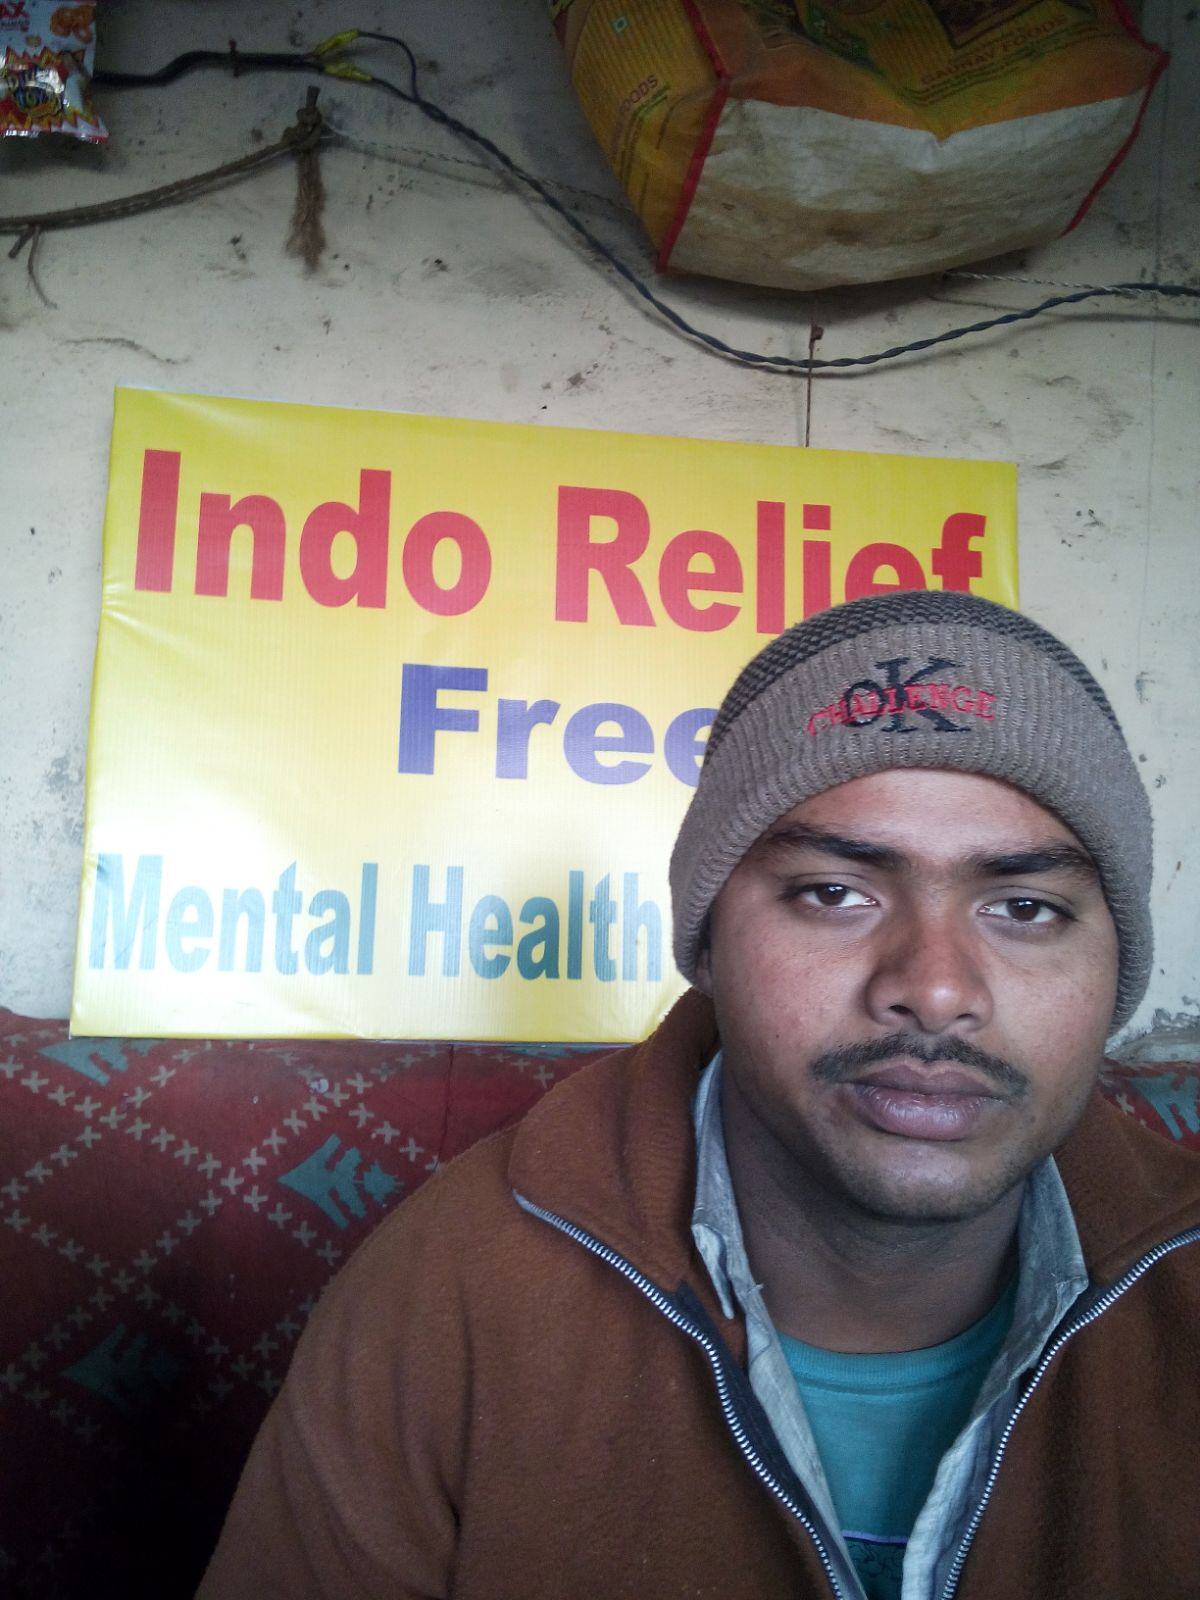 Aarav is 29 years old. He tells us that he gets very stressed about work and providing for his family. He wants to learn more about managing his stress.